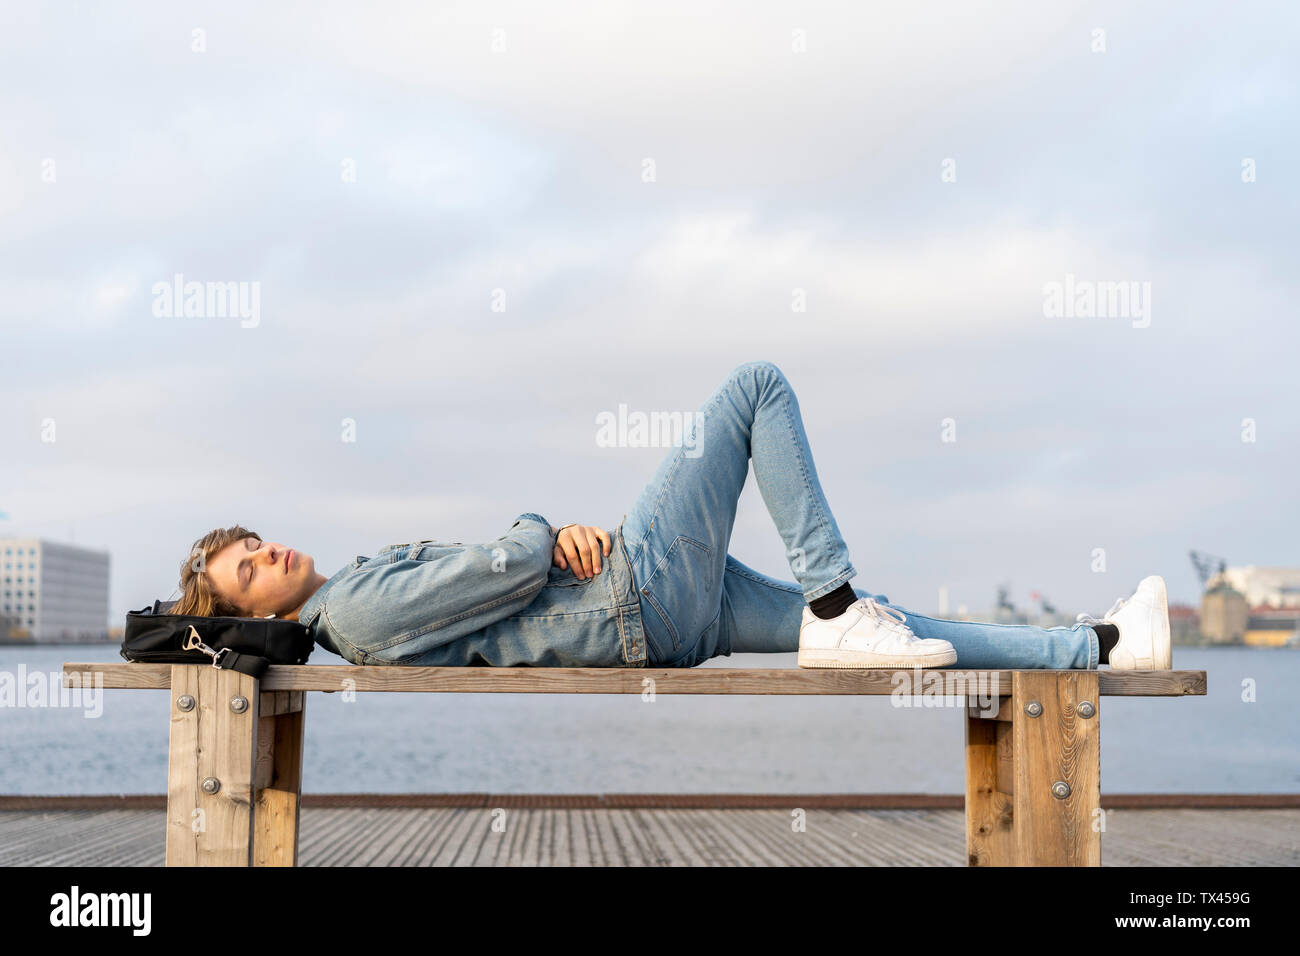 Denmark, Copenhagen, young man lying on a bench at the waterfront - Stock Image